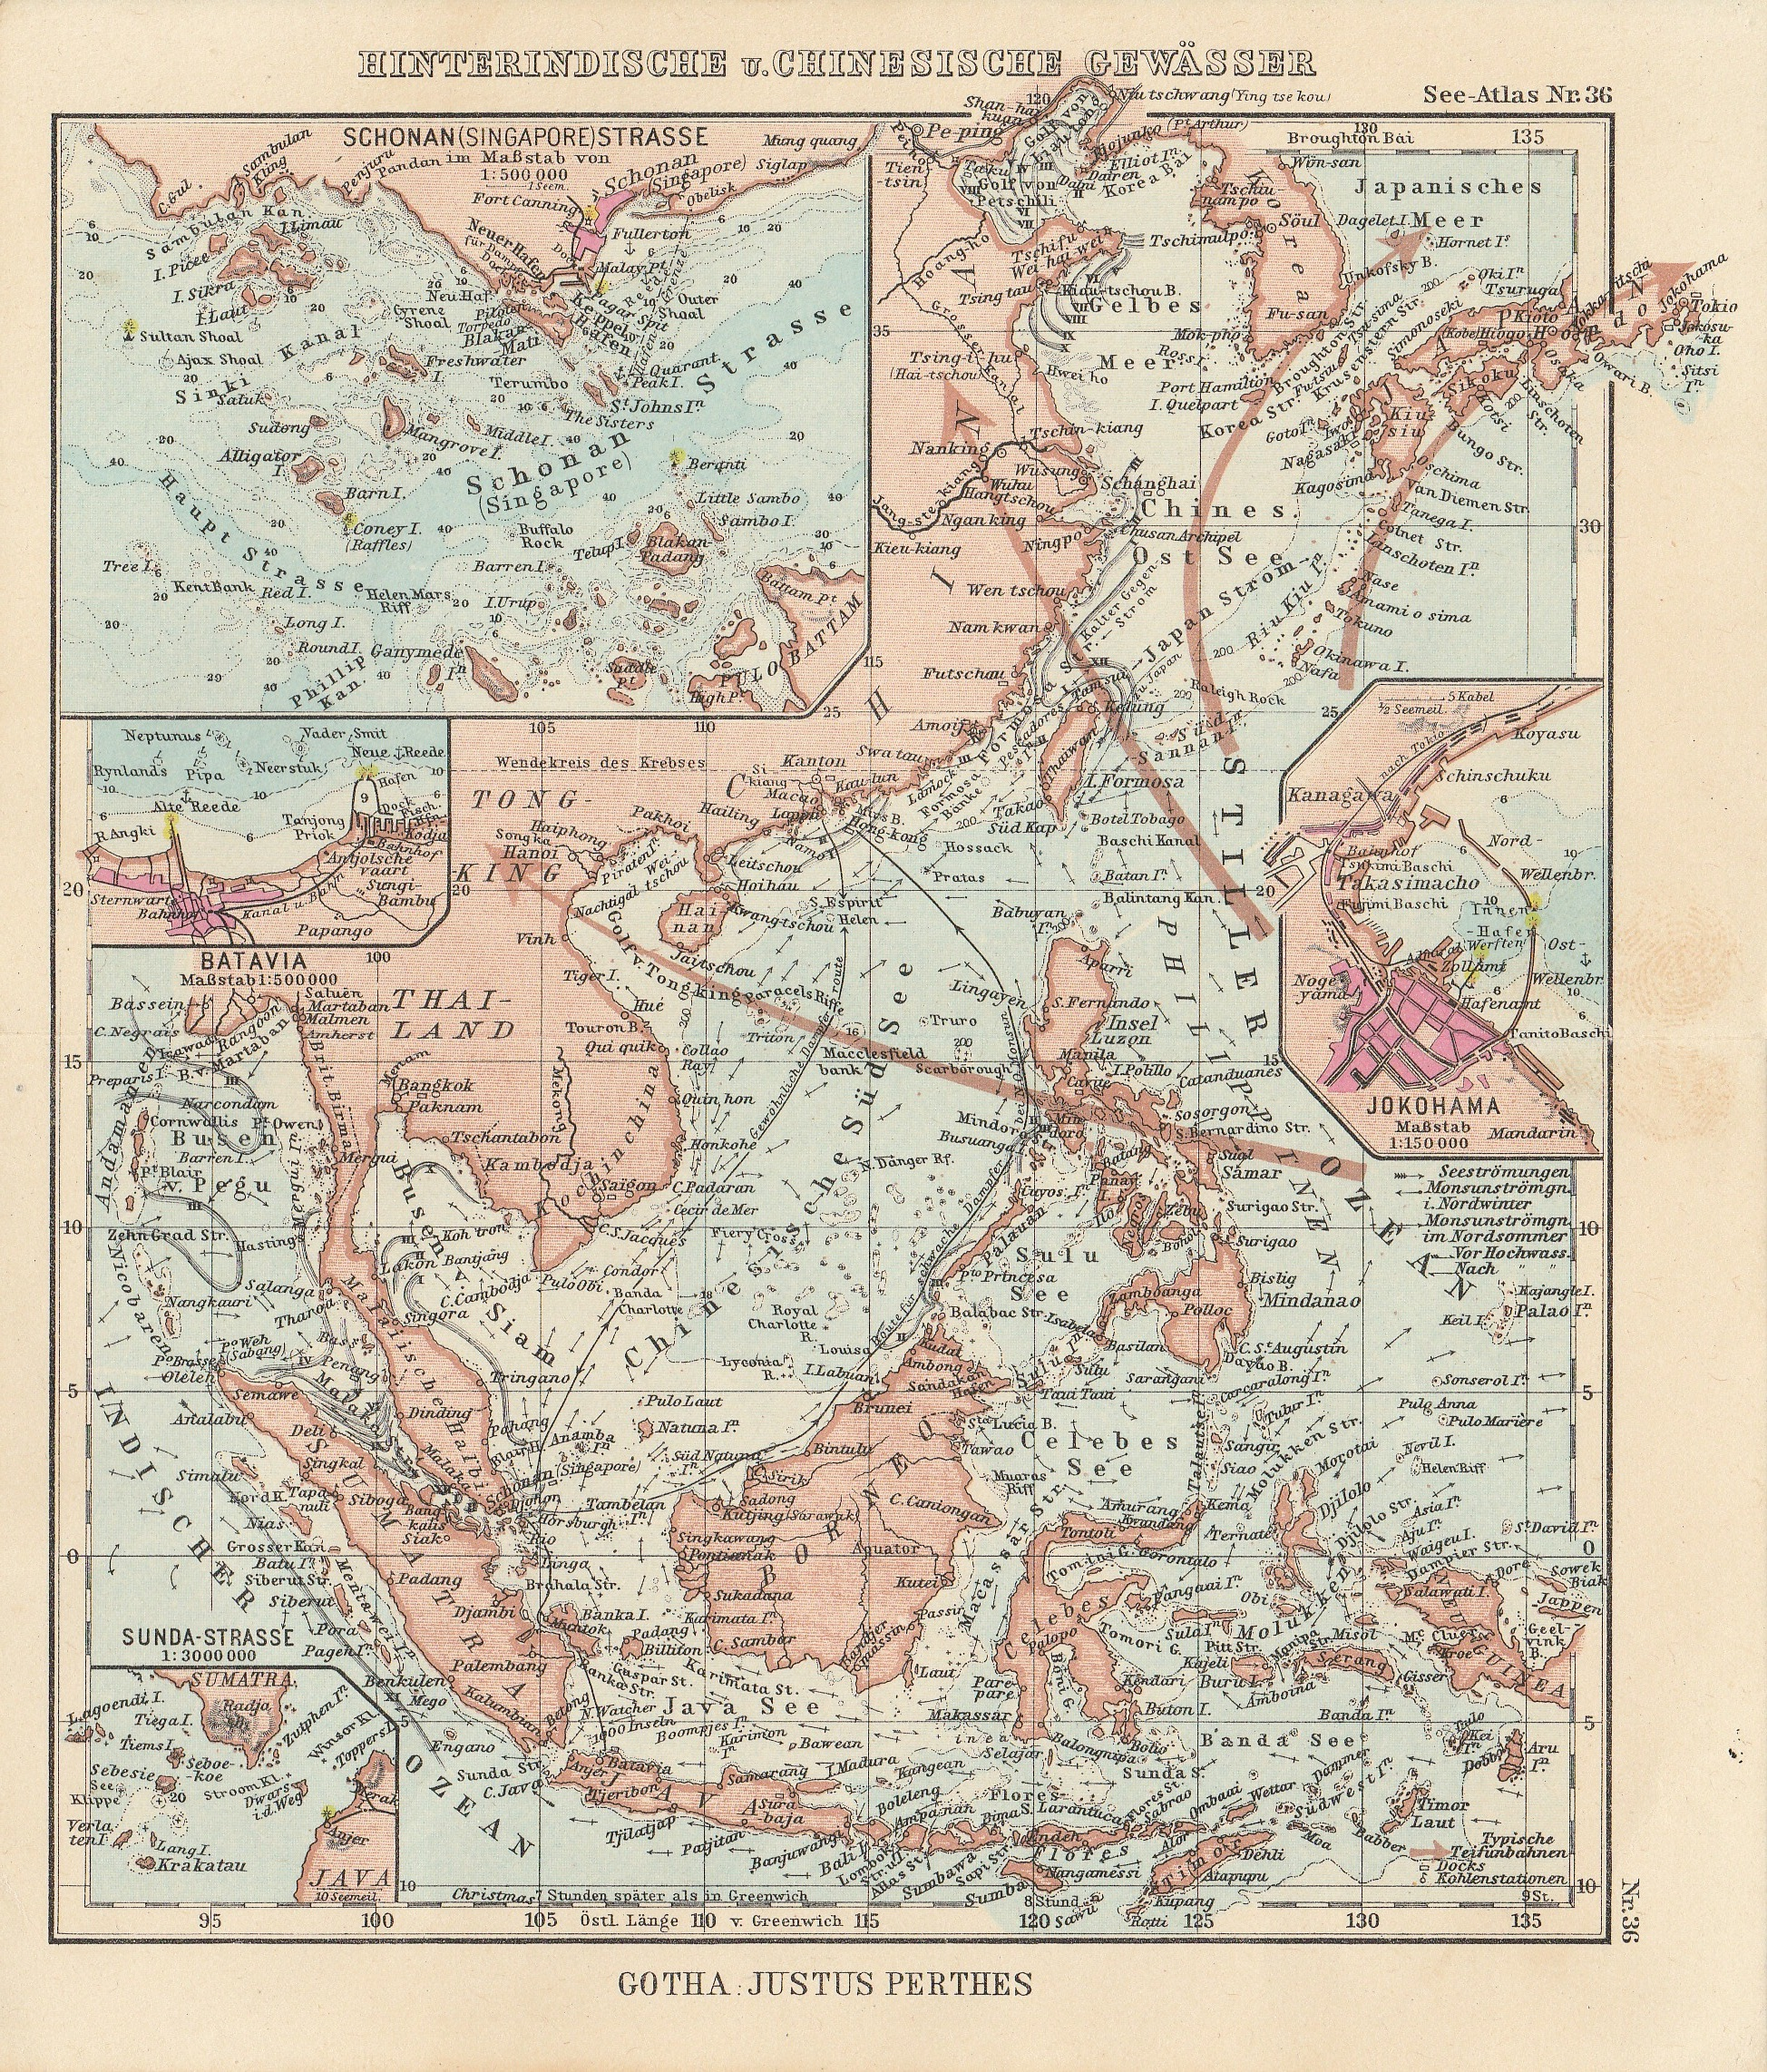 Map Of China And Southeast Asia.Southeast Asia And China Bartele Gallerybartele Gallery